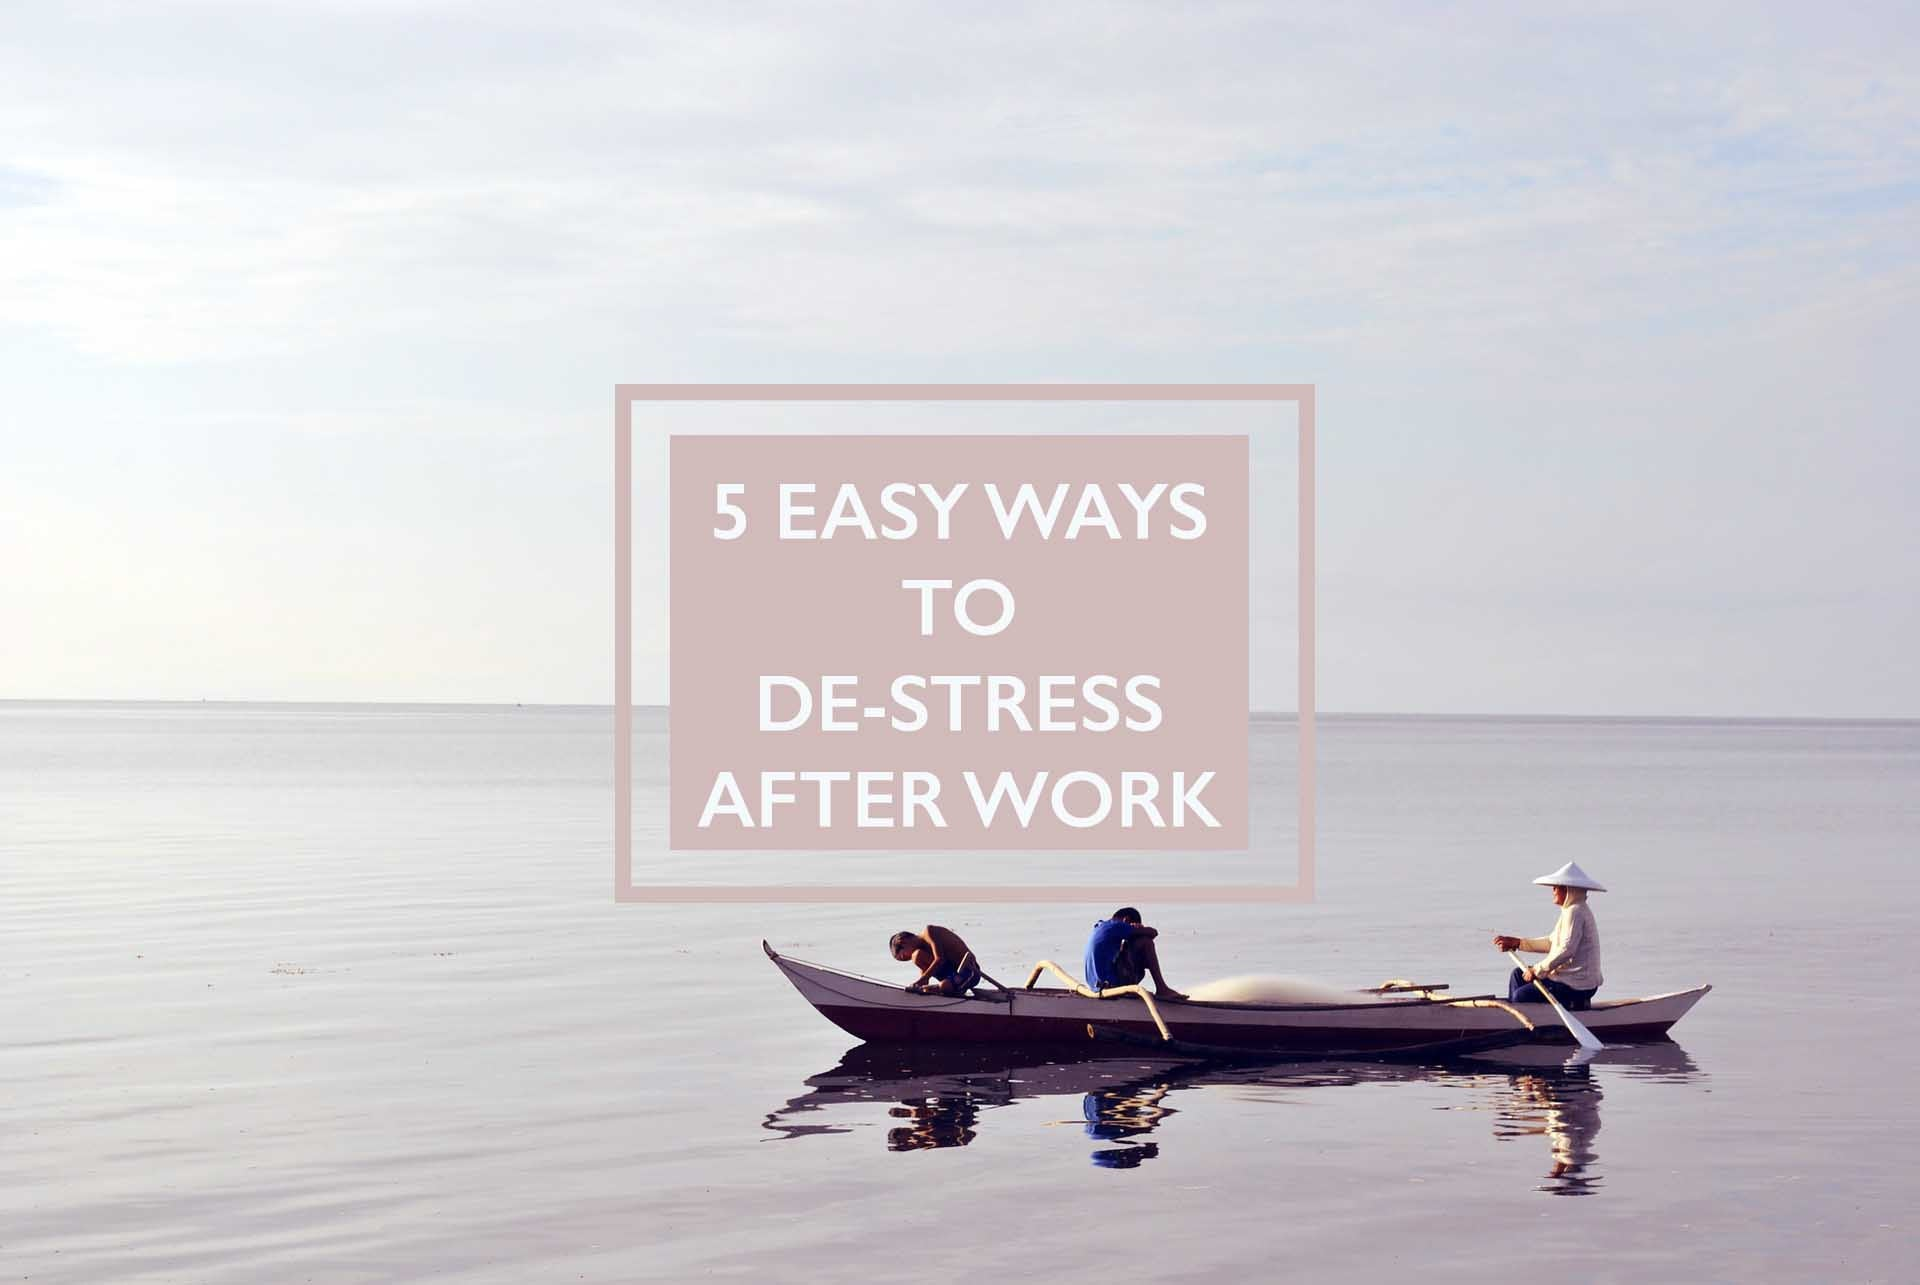 5 Easy Ways to De-stress After Work